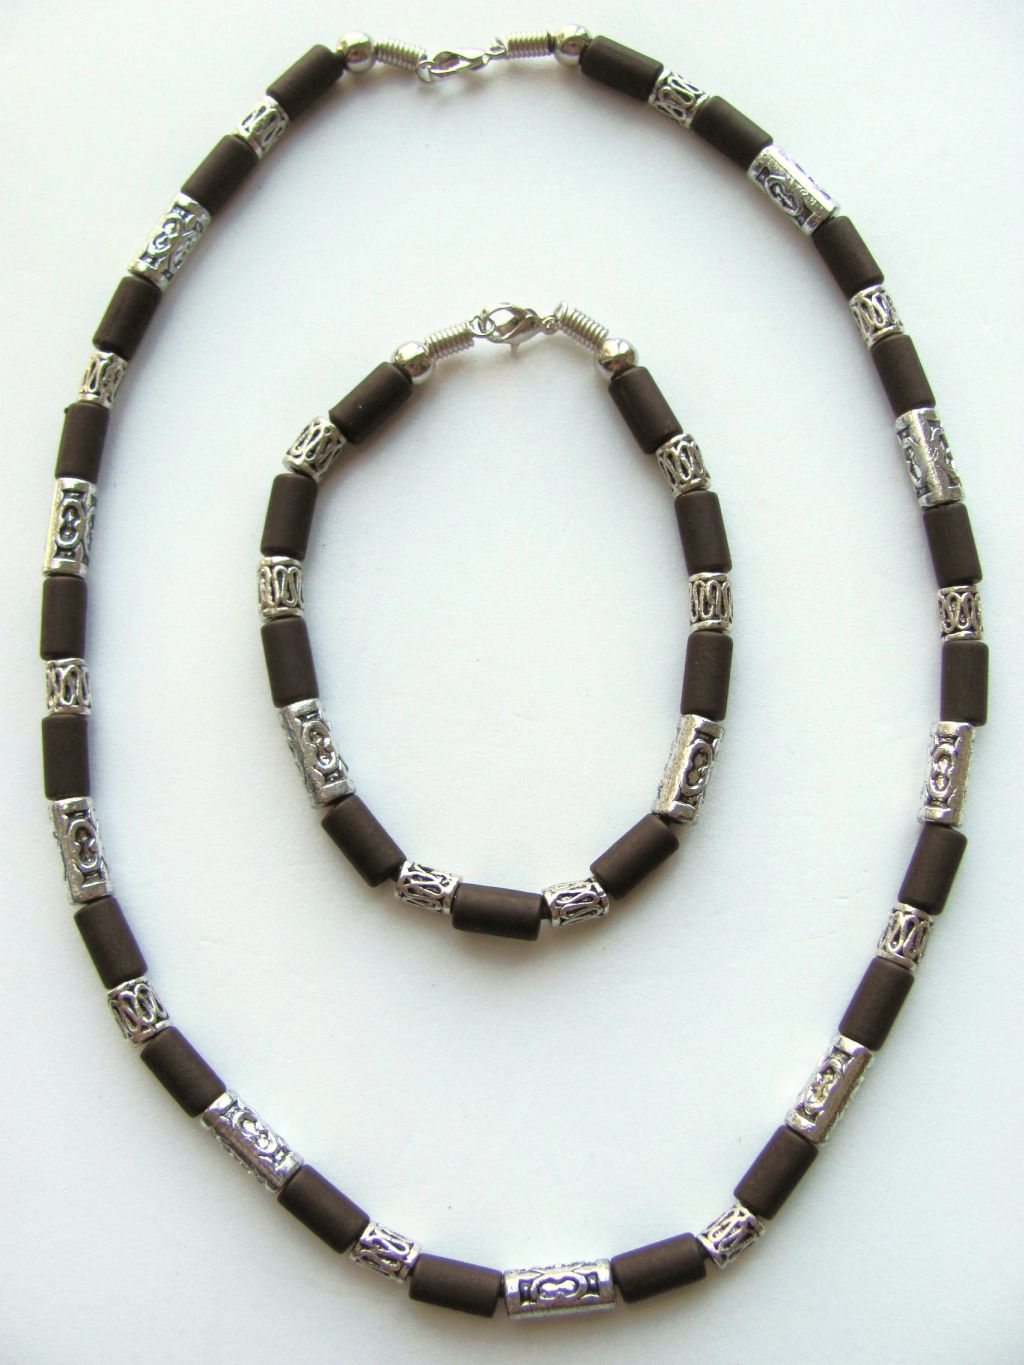 Cocoa Beach Two-tone Dark Brown Surfer Beaded Necklace Bracelet, Men's Beach Jewelry